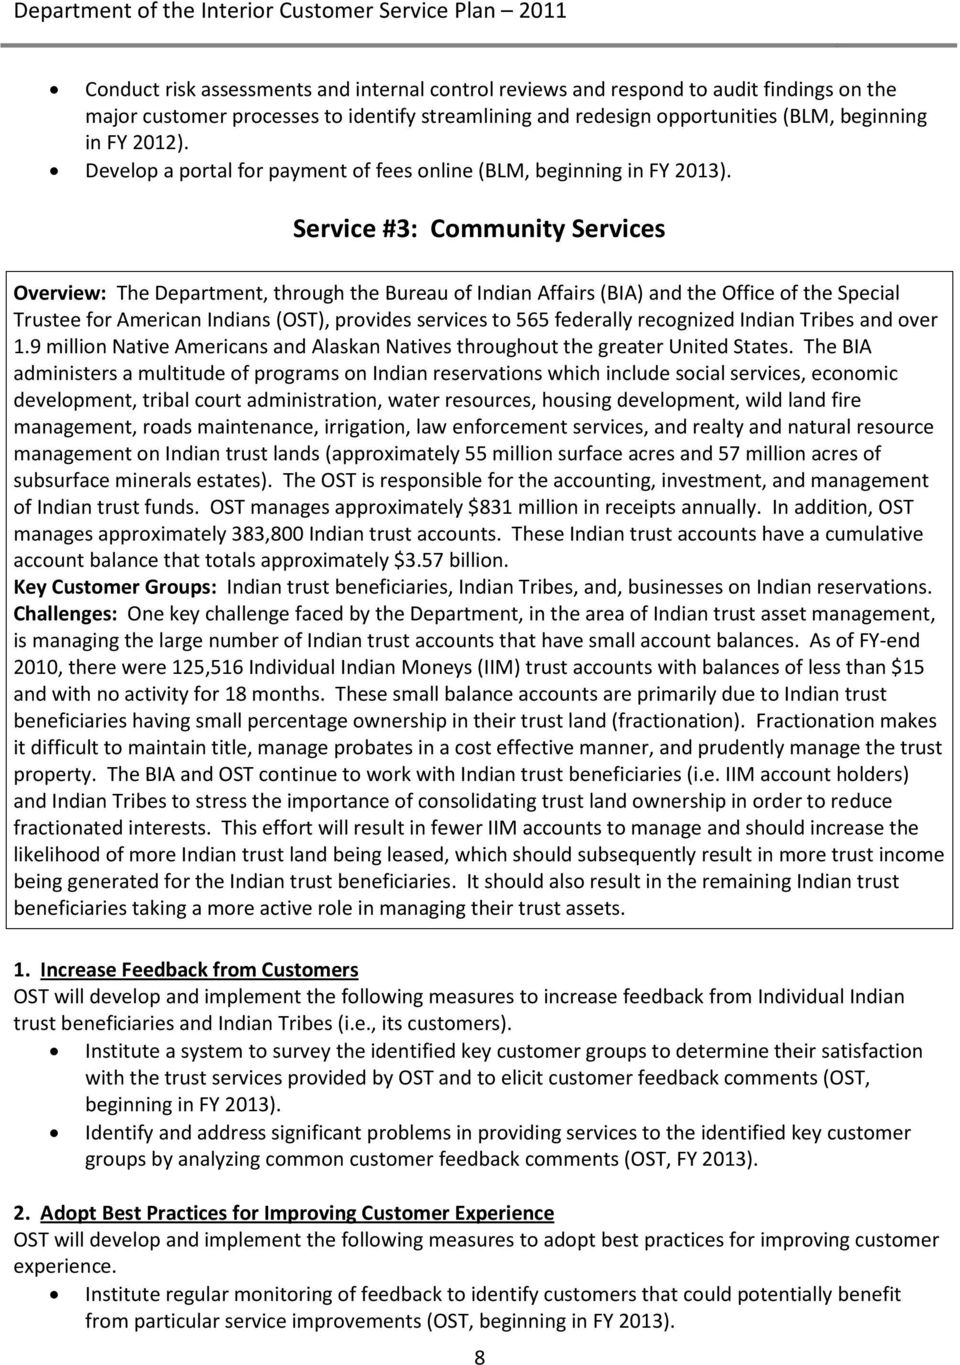 Service #3: Community Services Overview: The Department, through the Bureau of Indian Affairs (BIA) and the Office of the Special Trustee for American Indians (OST), provides services to 565